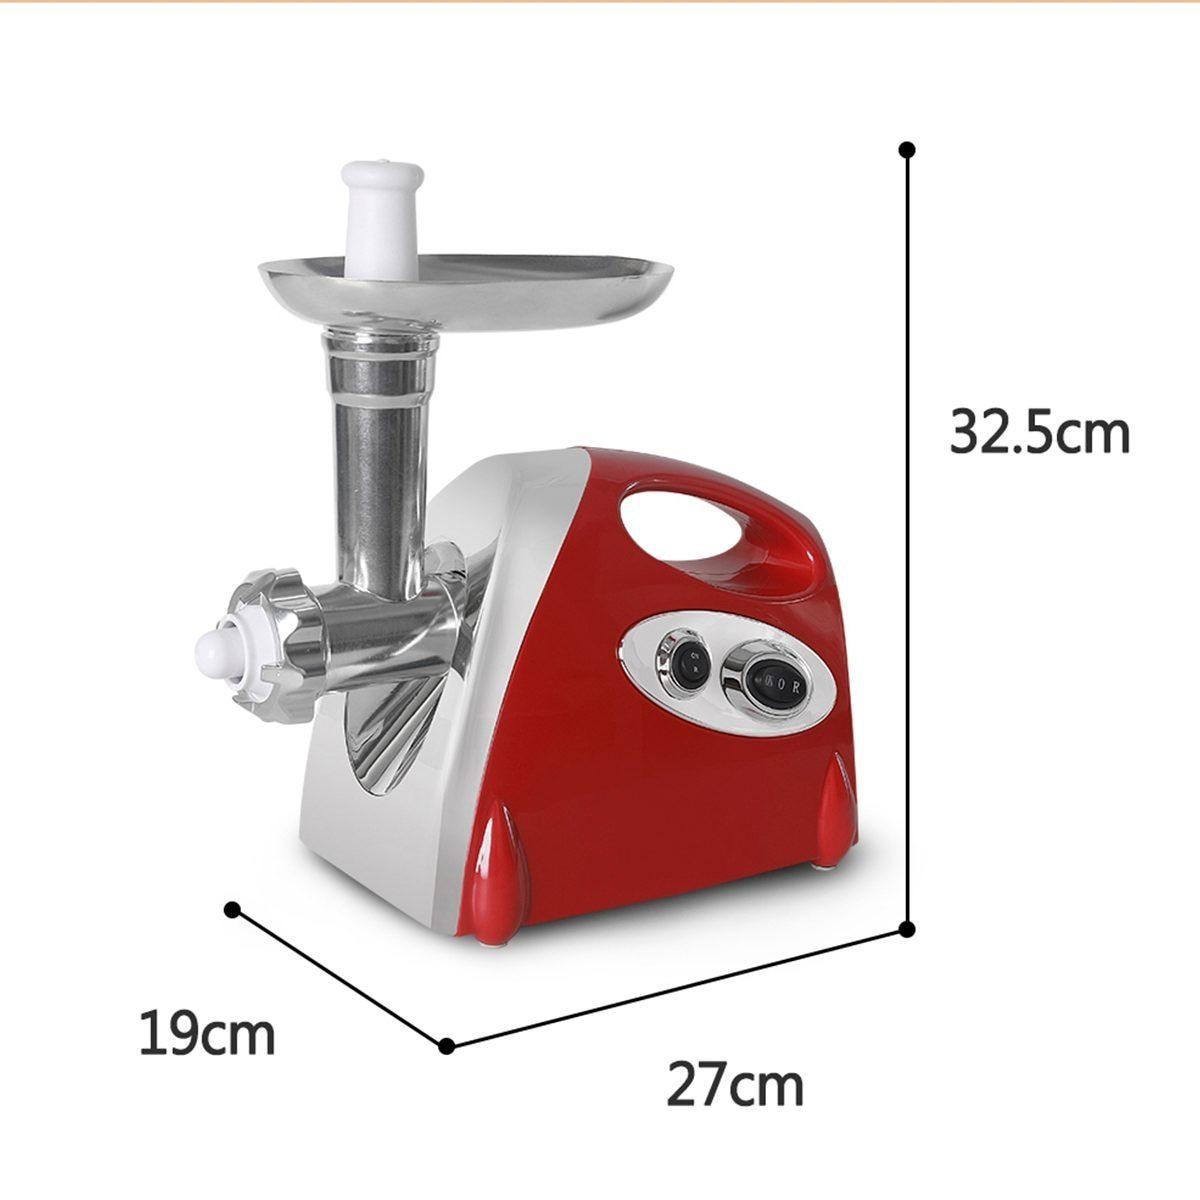 Premium Electric Meat and Sausage Grinder - Shopptique